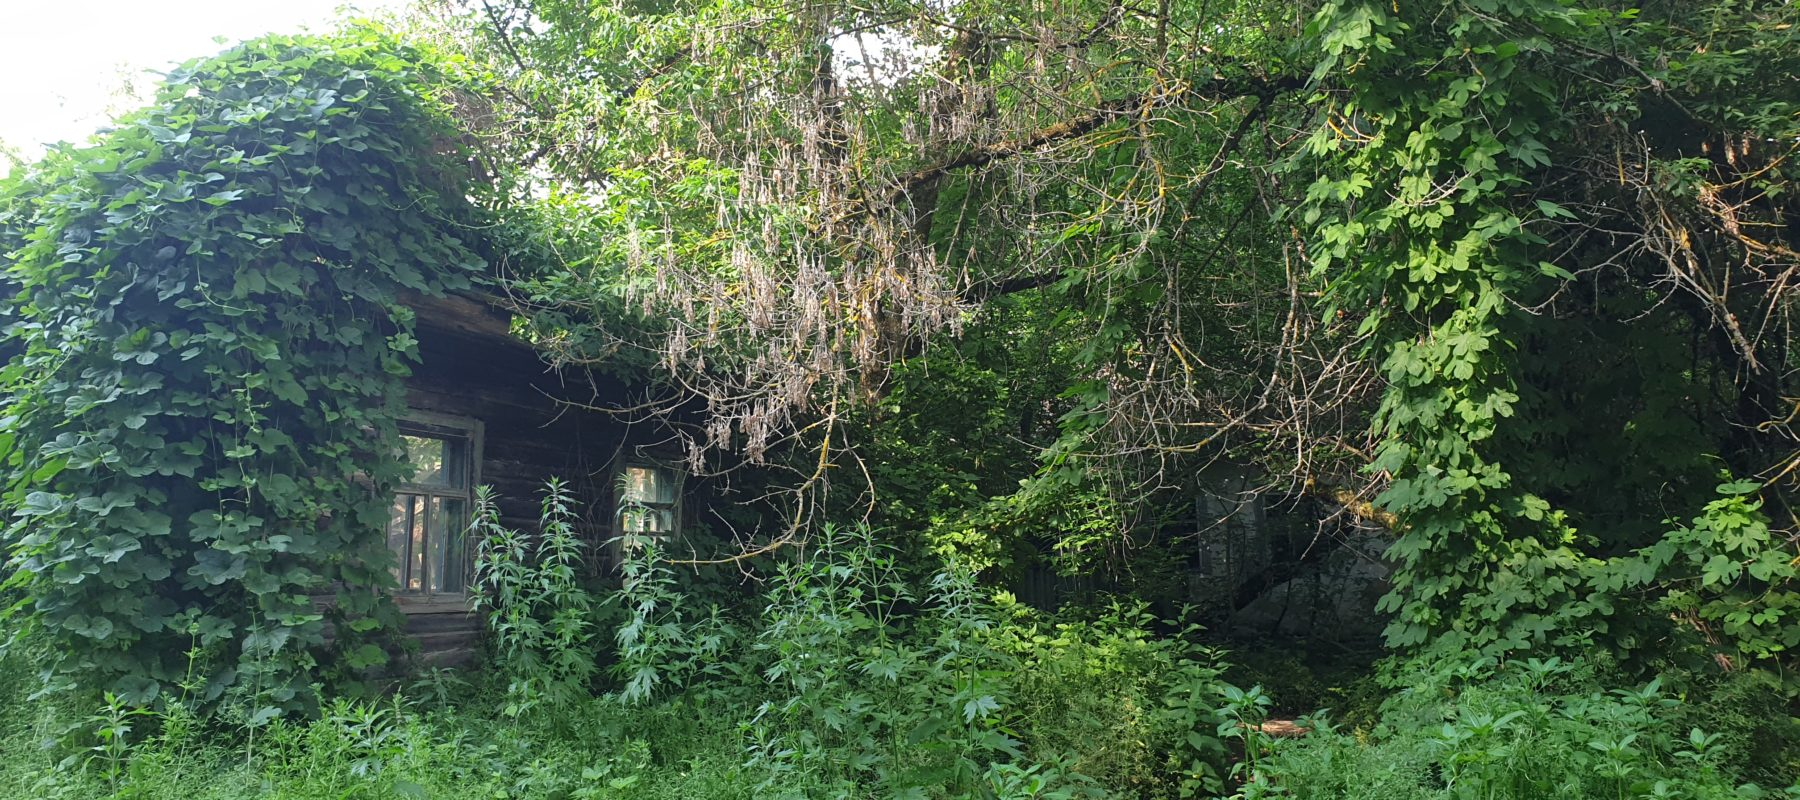 A thickets surrounded a house in a forest